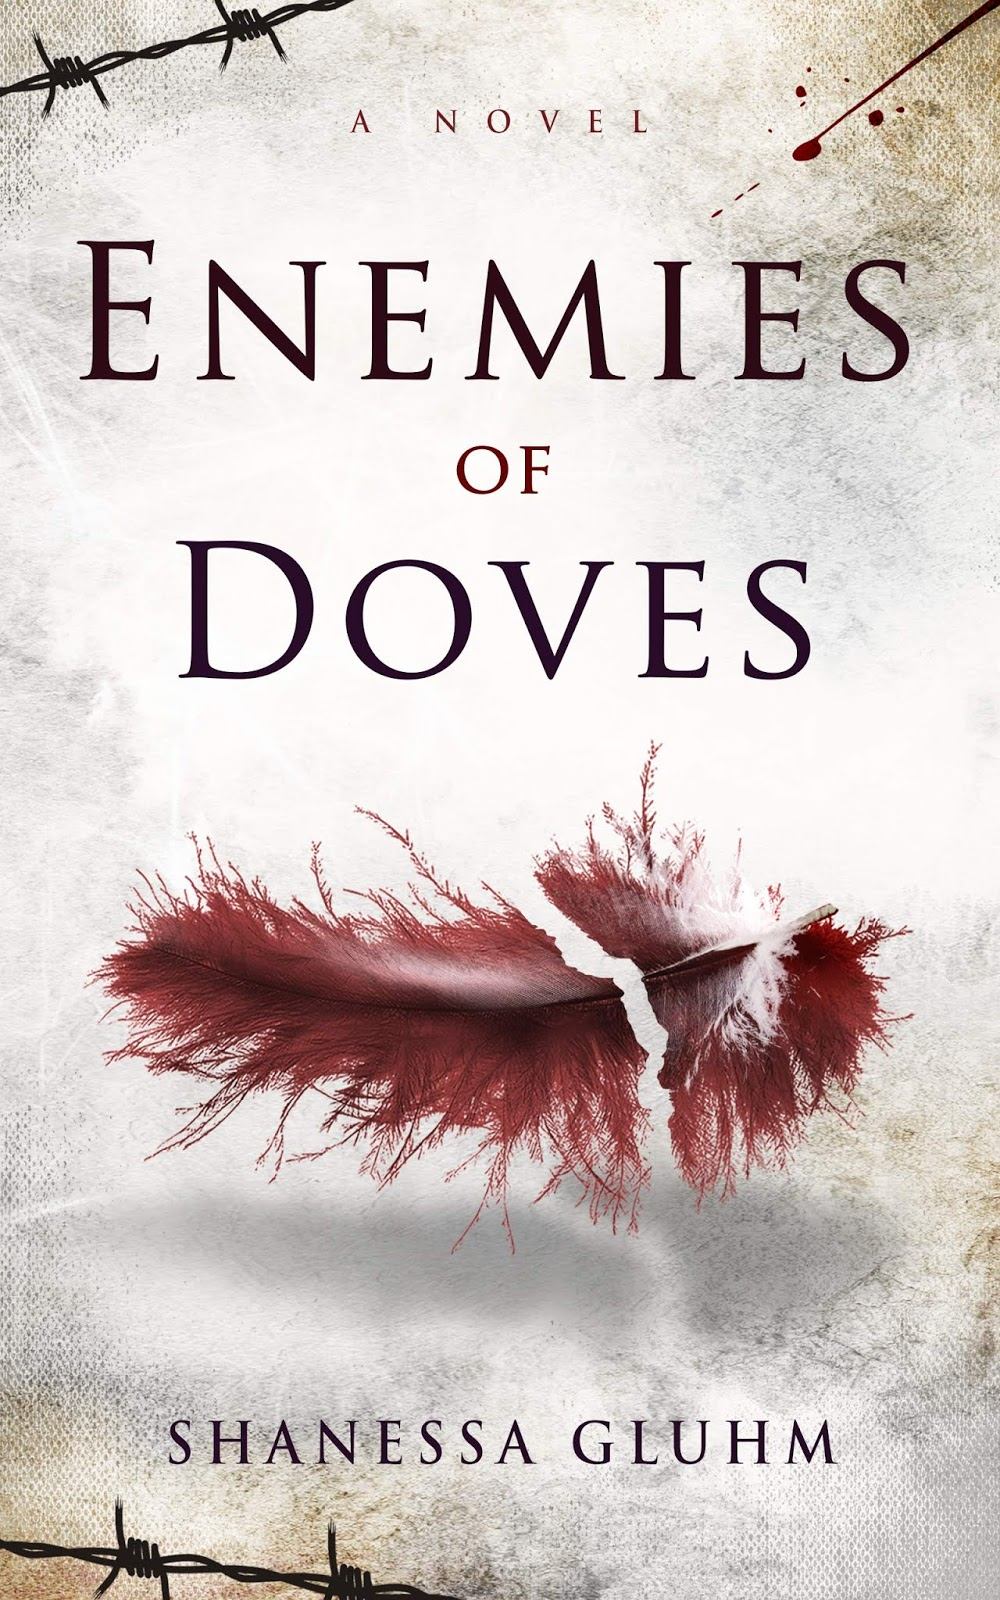 Enemies of Doves book cover